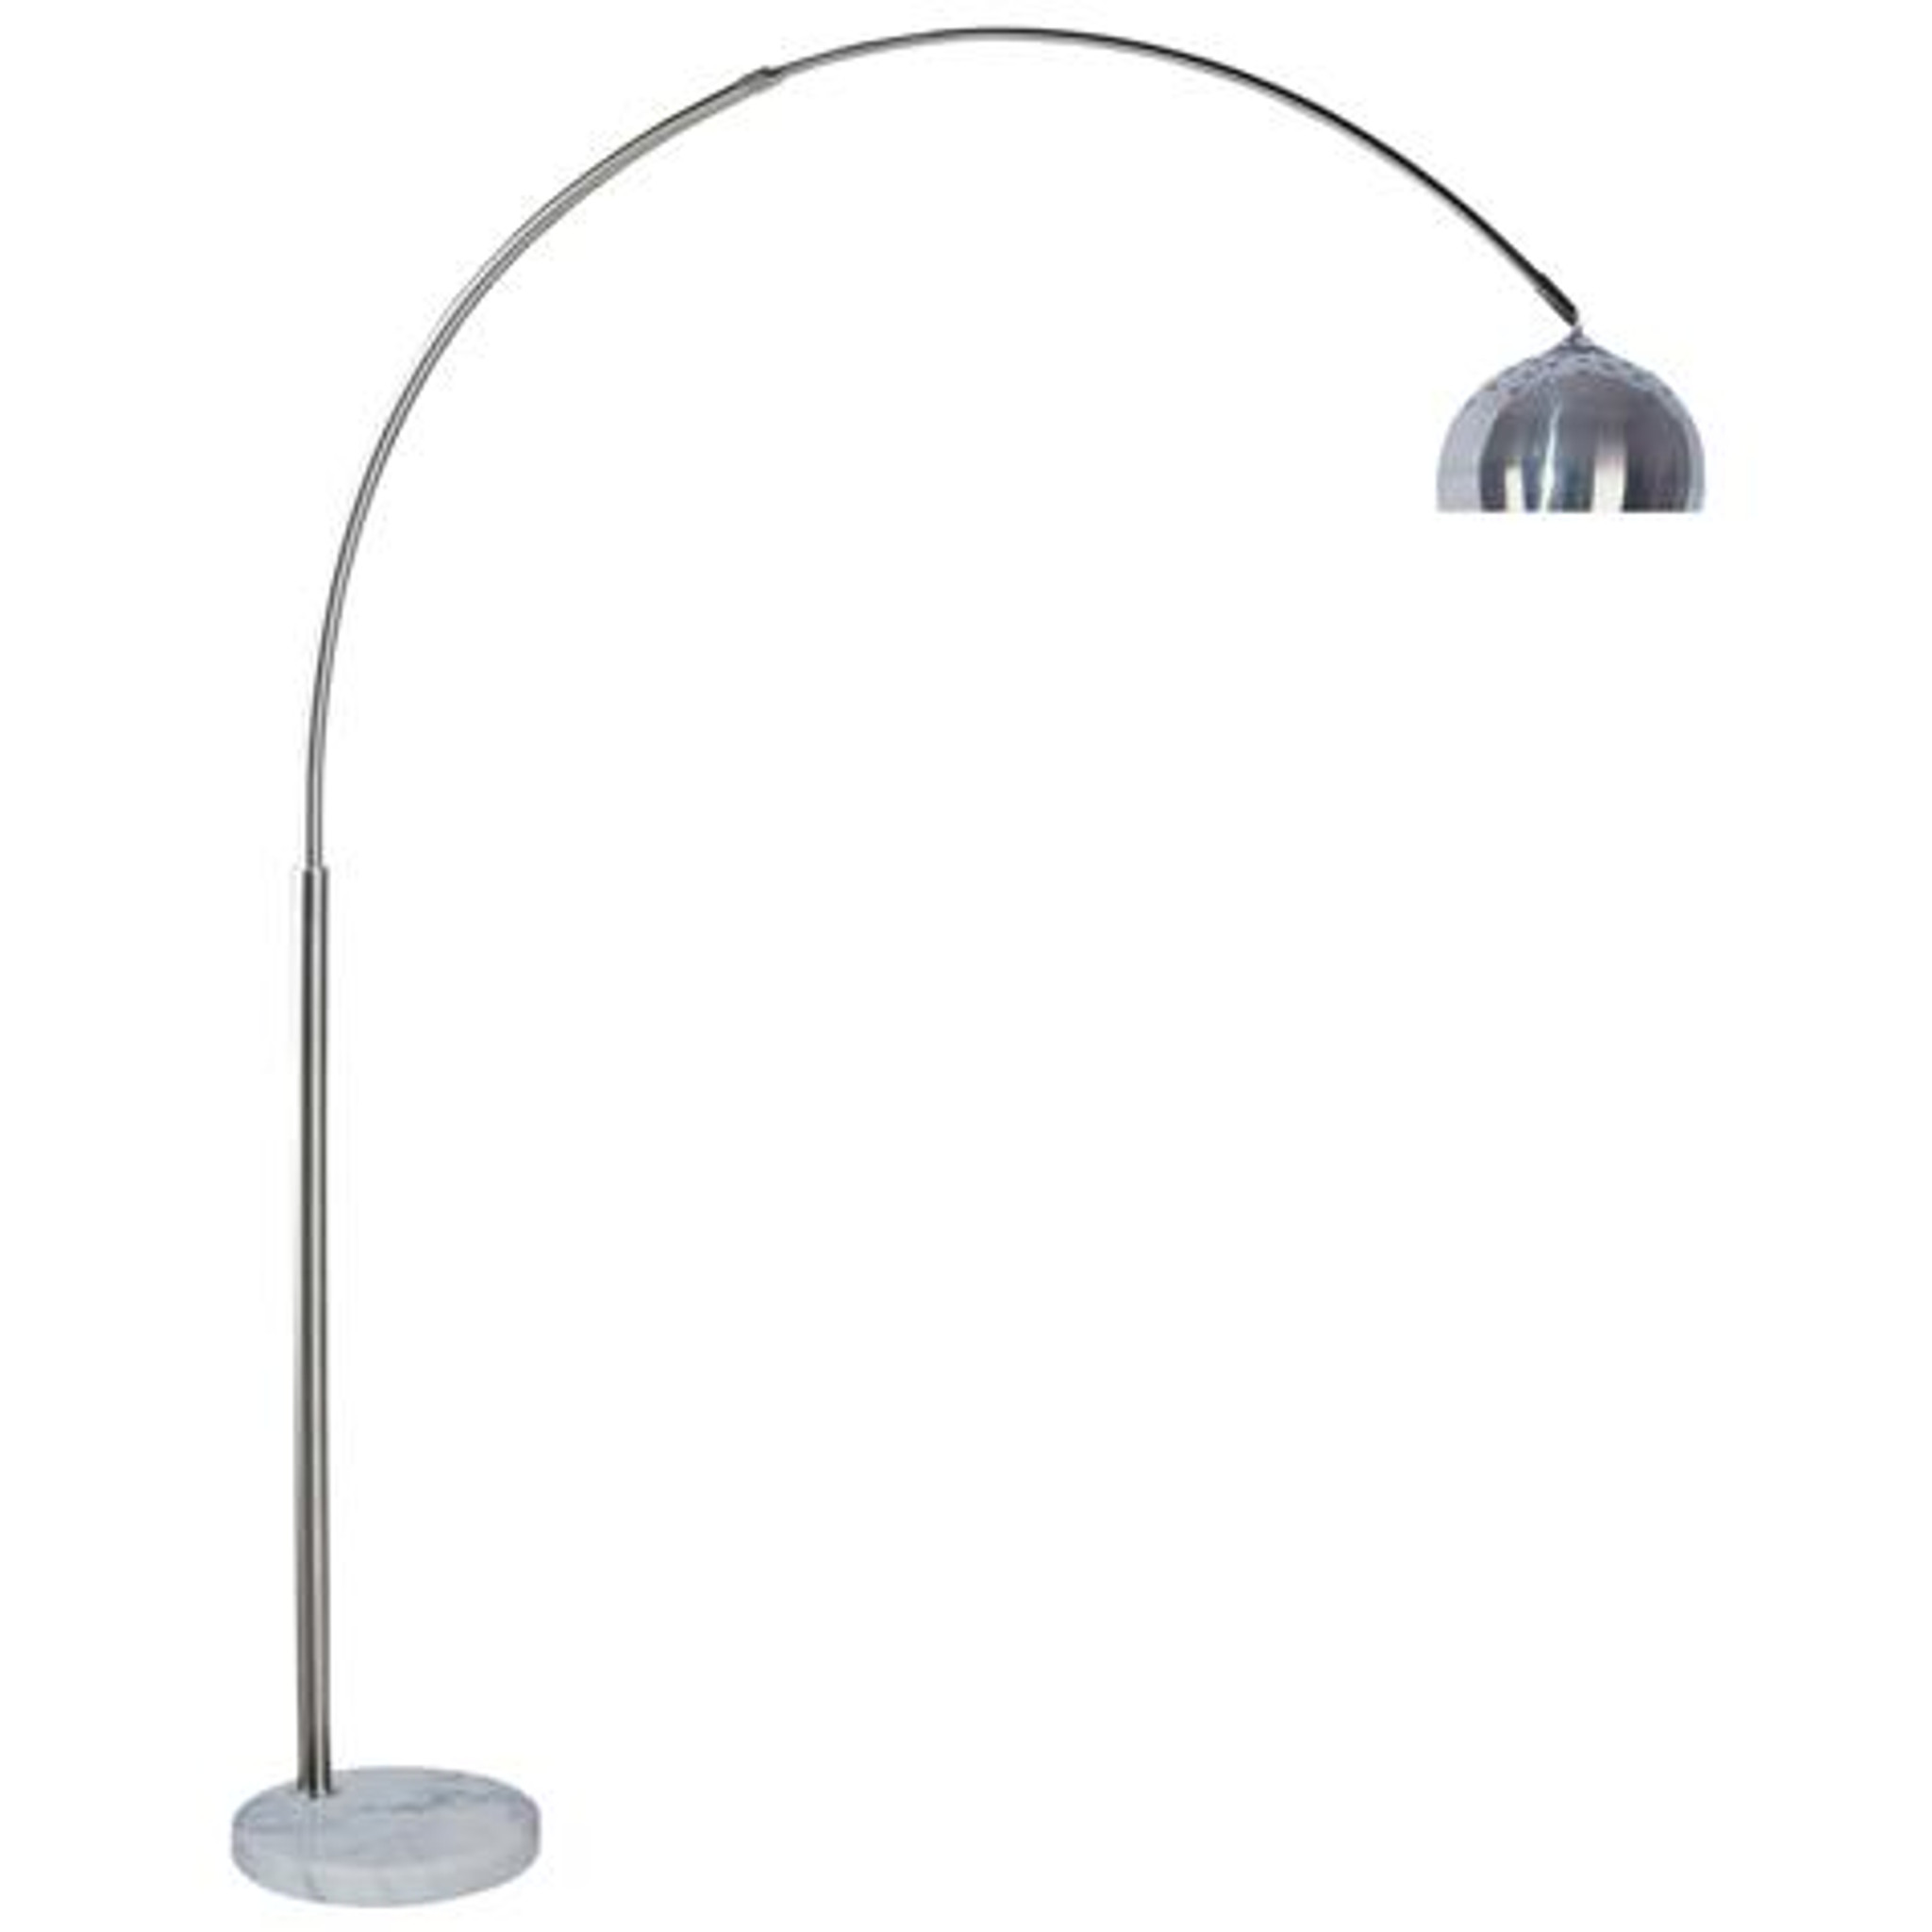 6221 Arc Floor Lamp With Dome Shade Marble Base Collection By Crown Mark